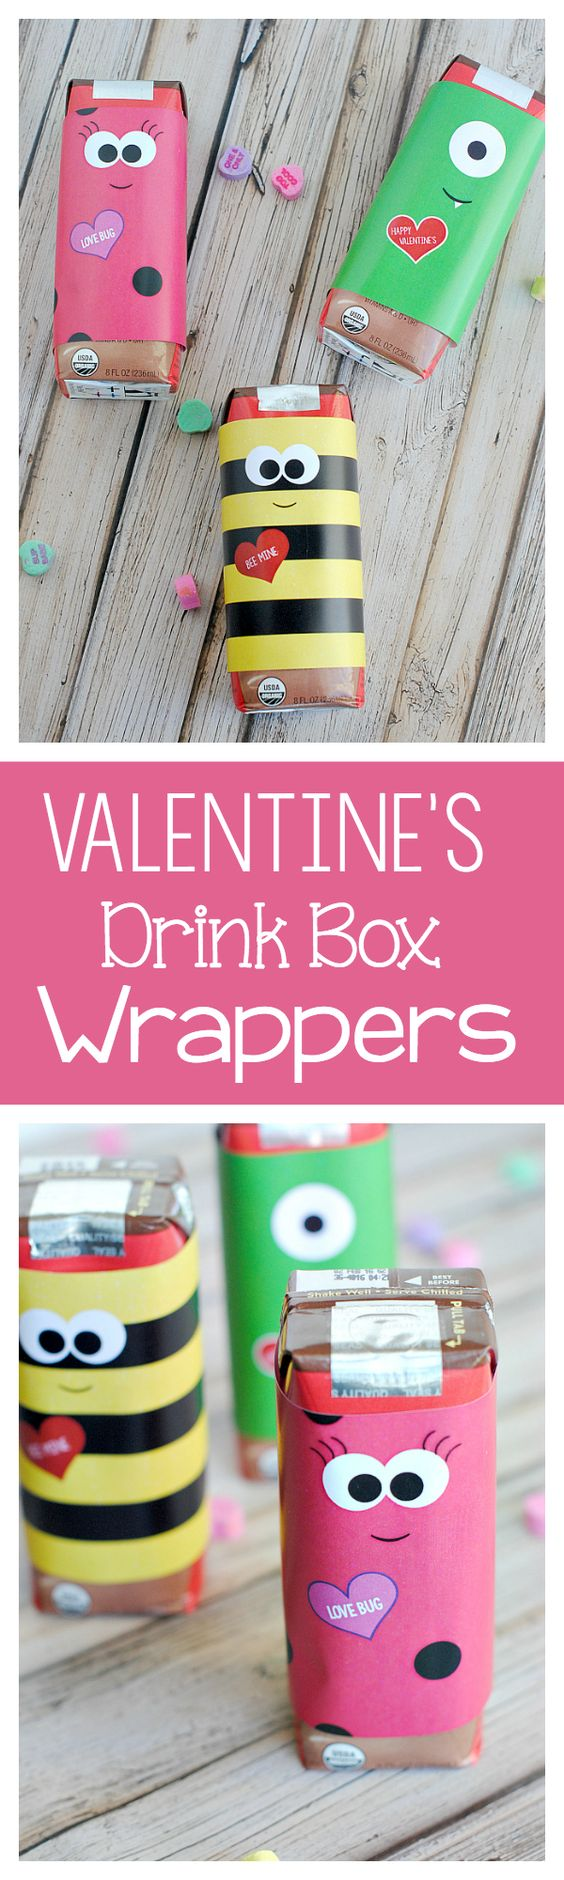 Cute Valentine's Day Party Drink Box Wrappers FREE PRINTABLES via Crazy Little Projects -Perfect for a party! Just print and wrap!